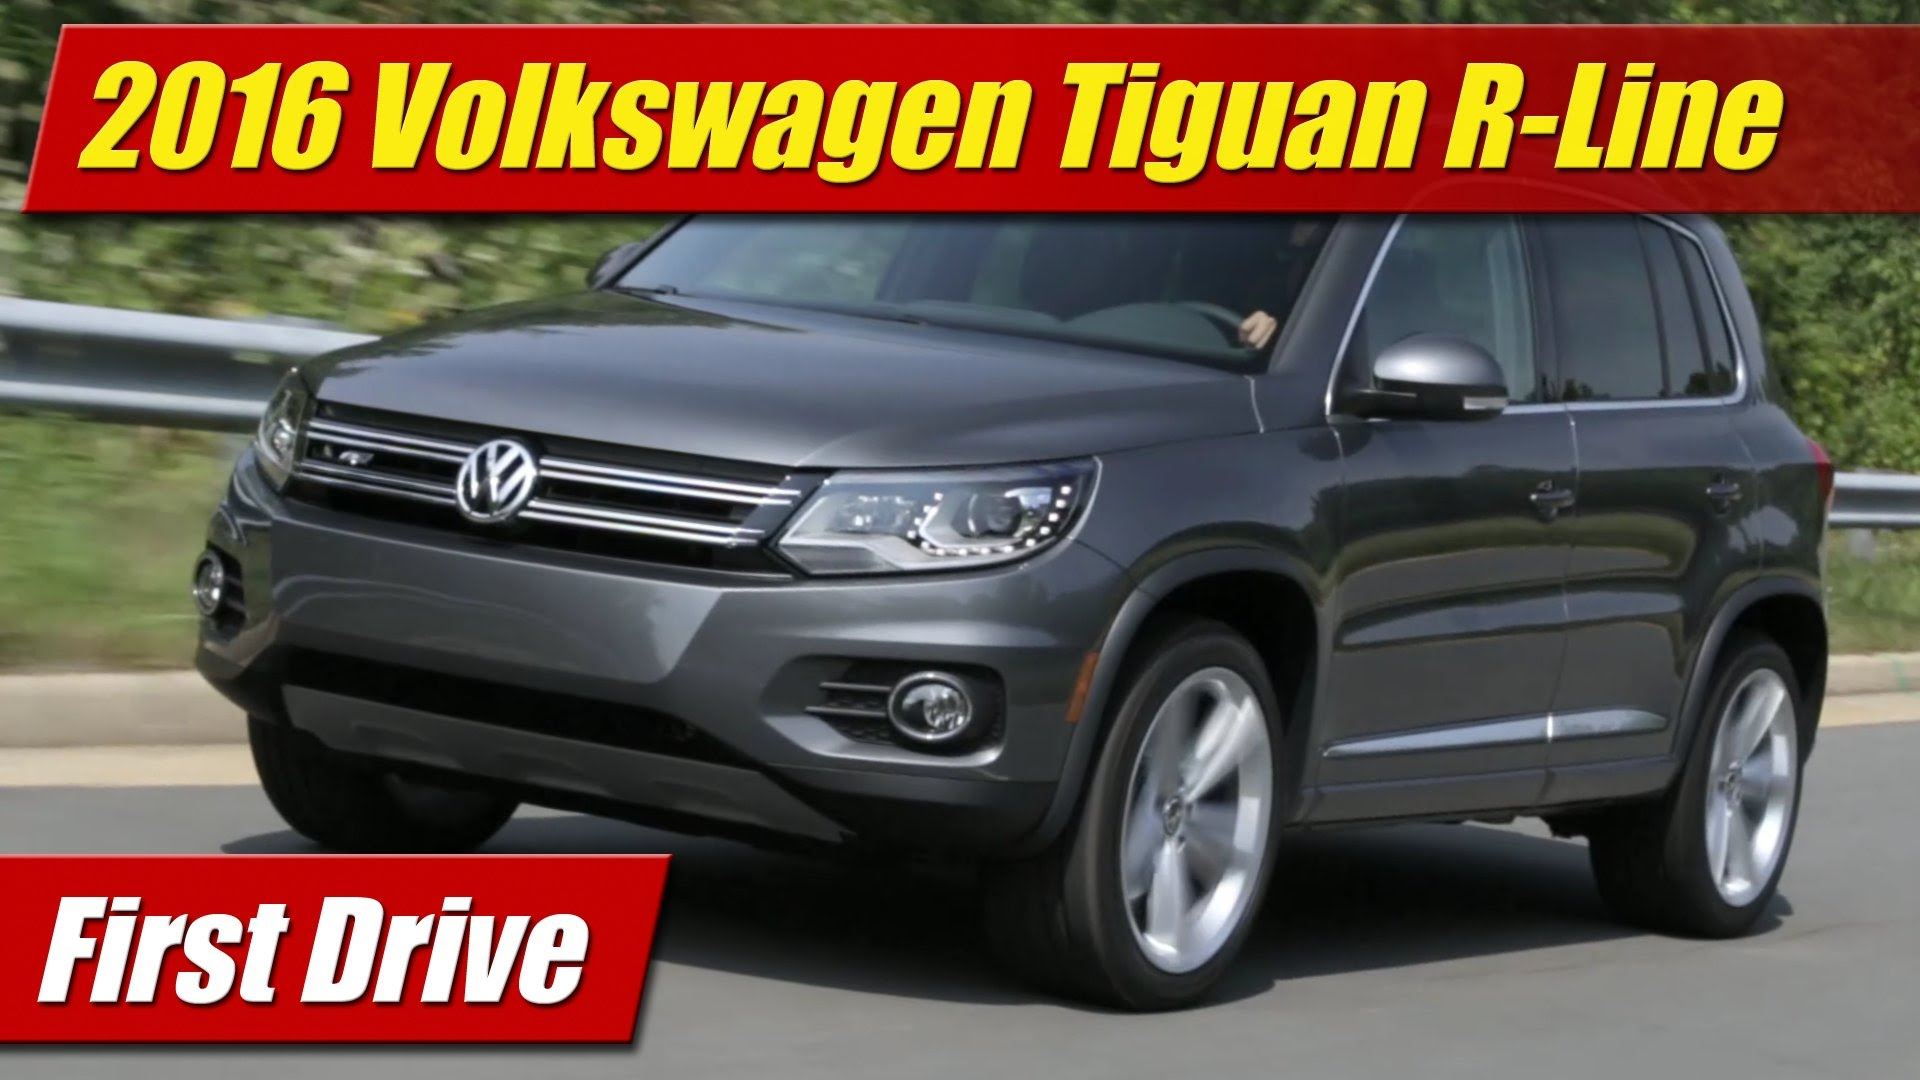 first drive 2016 volkswagen tiguan r line testdriven tv. Black Bedroom Furniture Sets. Home Design Ideas